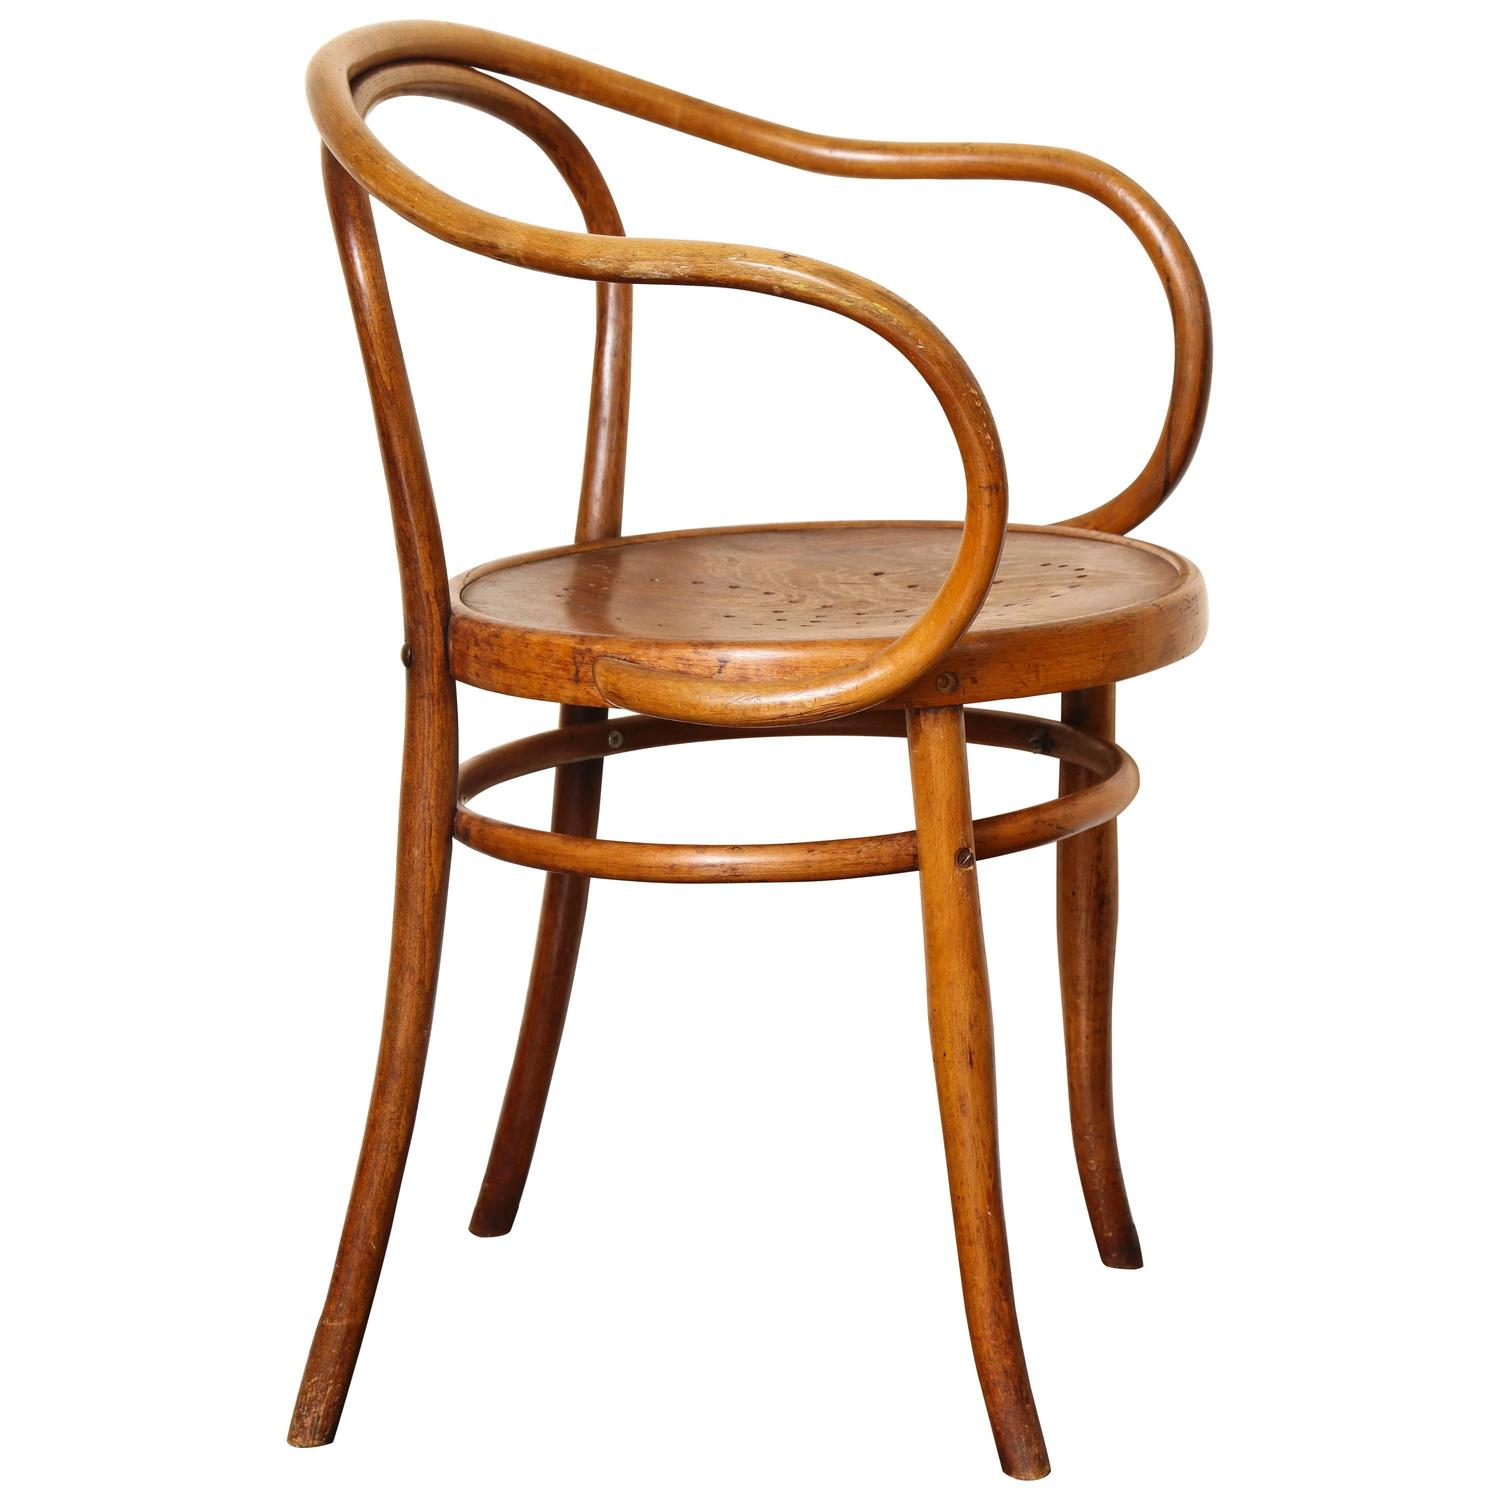 Bent Wood Chairs Bentwood B 9 Chair By Michael Thonet Manufactured By